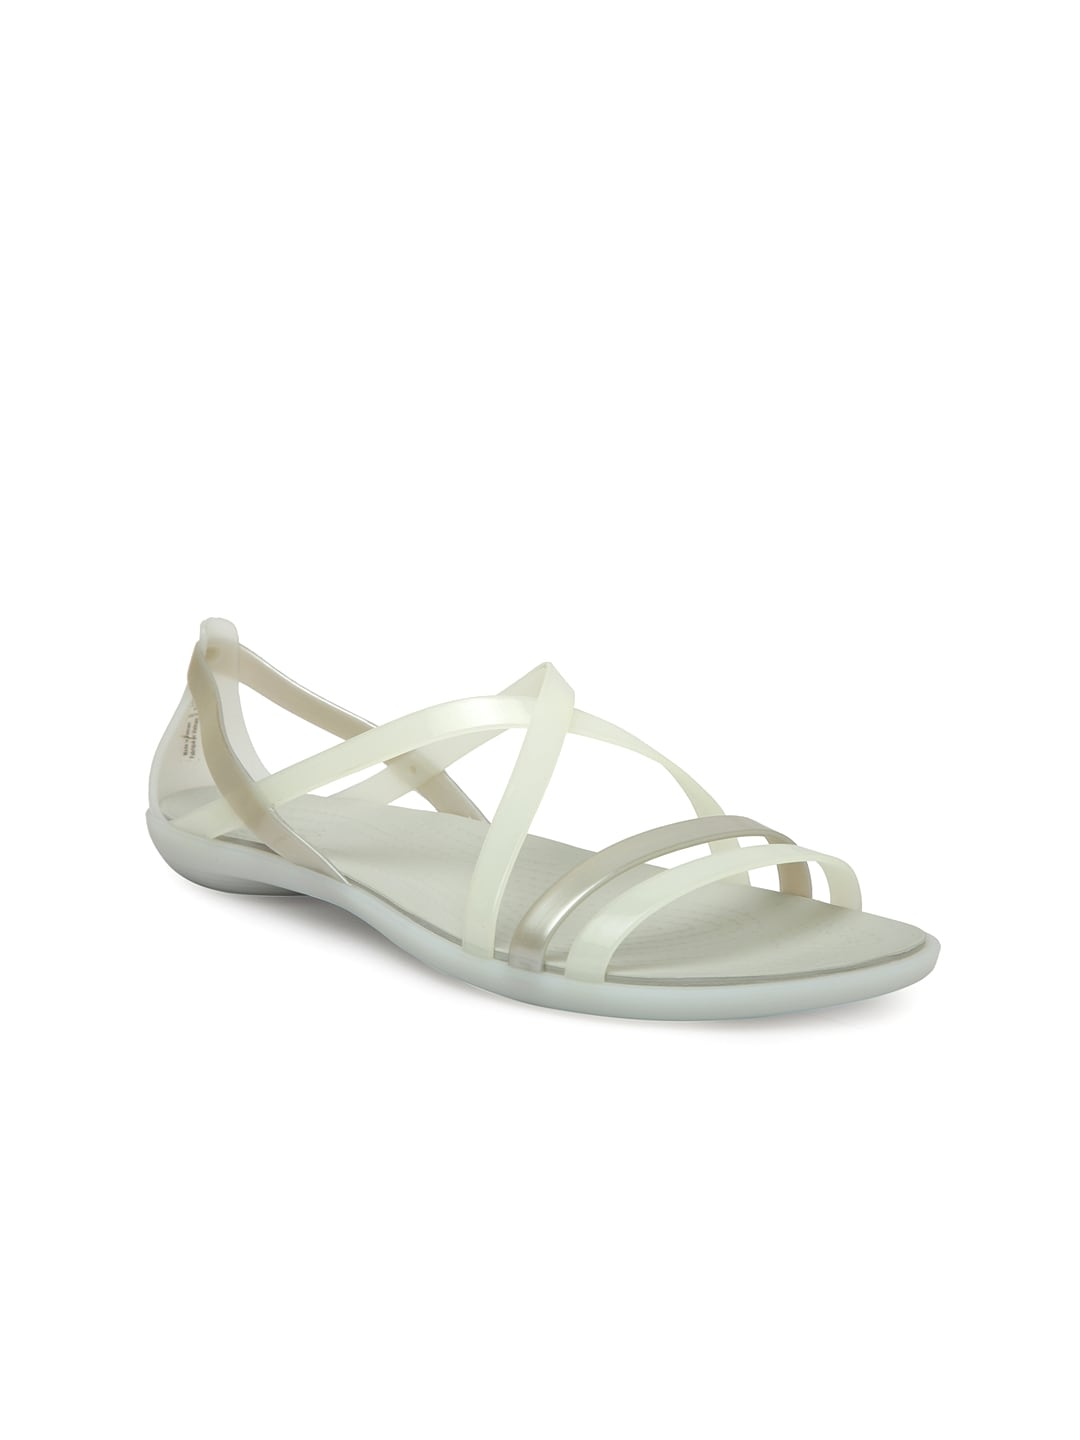 8031fa1eb94 Crocs Patricia Off White Sandals for women - Get stylish shoes for ...